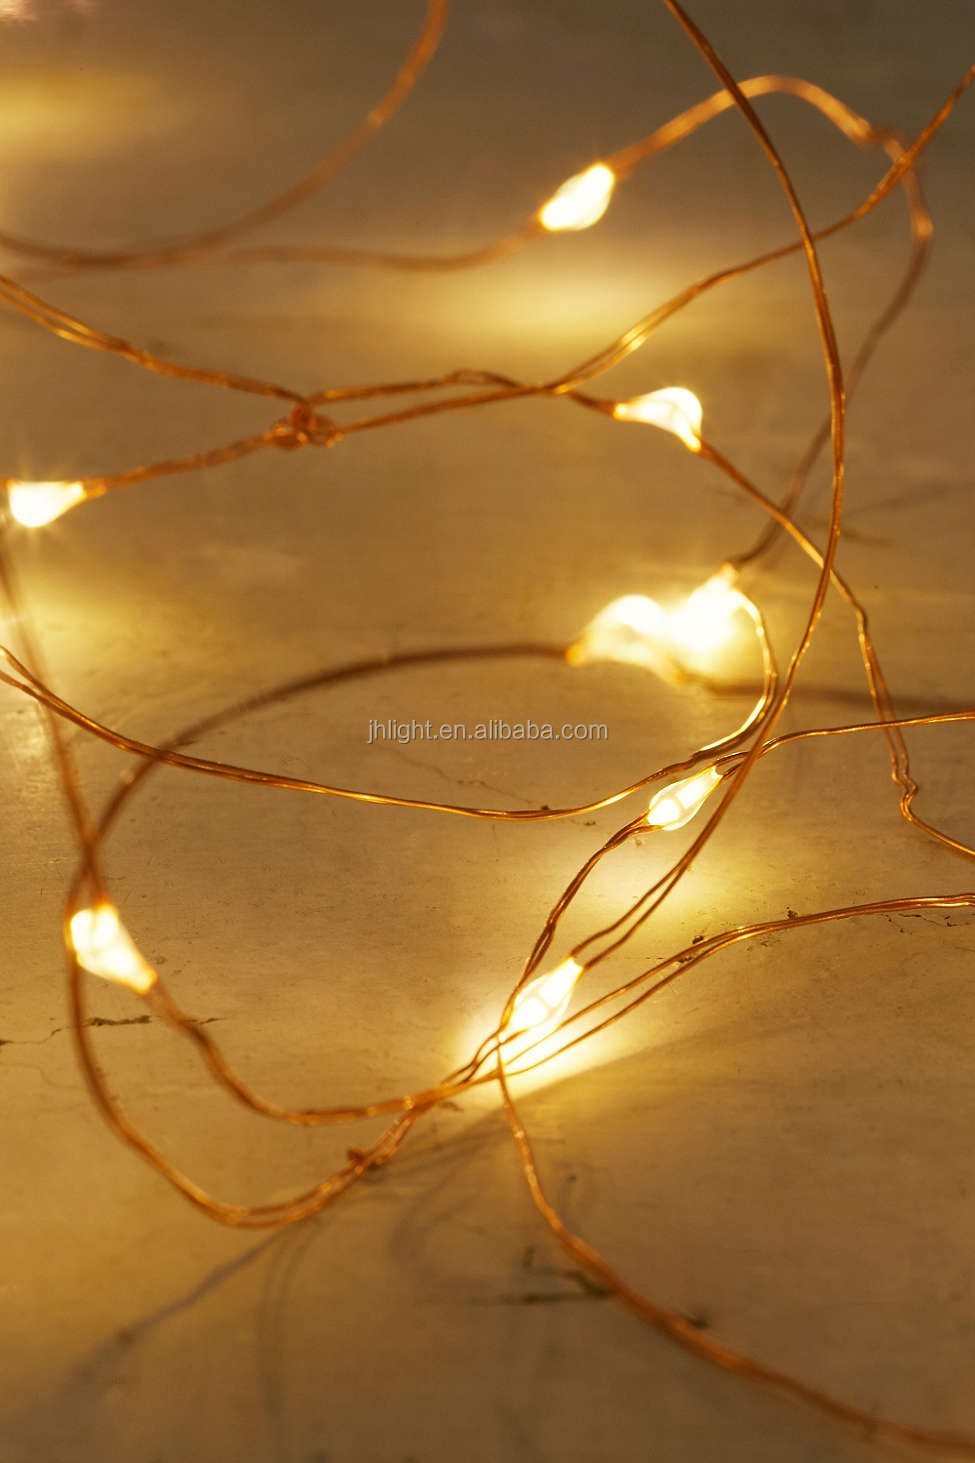 Firefly String Lights Diy Fancy Bedroom For Wedding Valentine s Day Events - Buy Bedroom ...